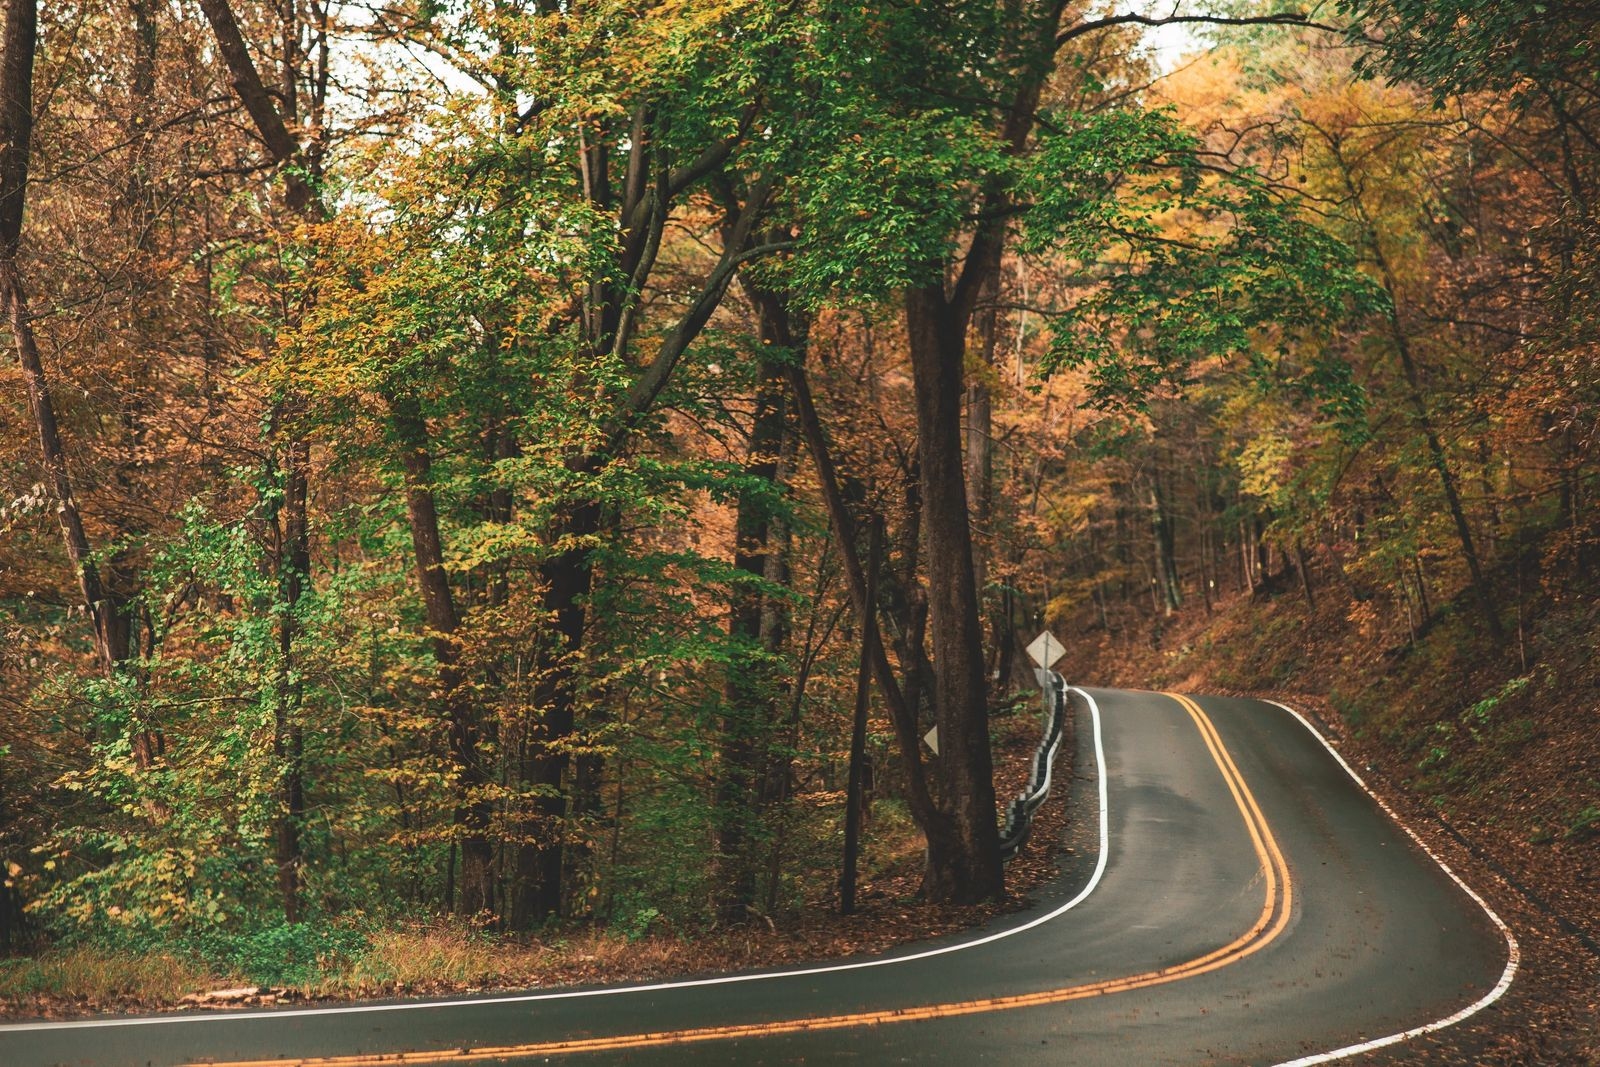 Scenic Road Trip For Fall Colors In The USA